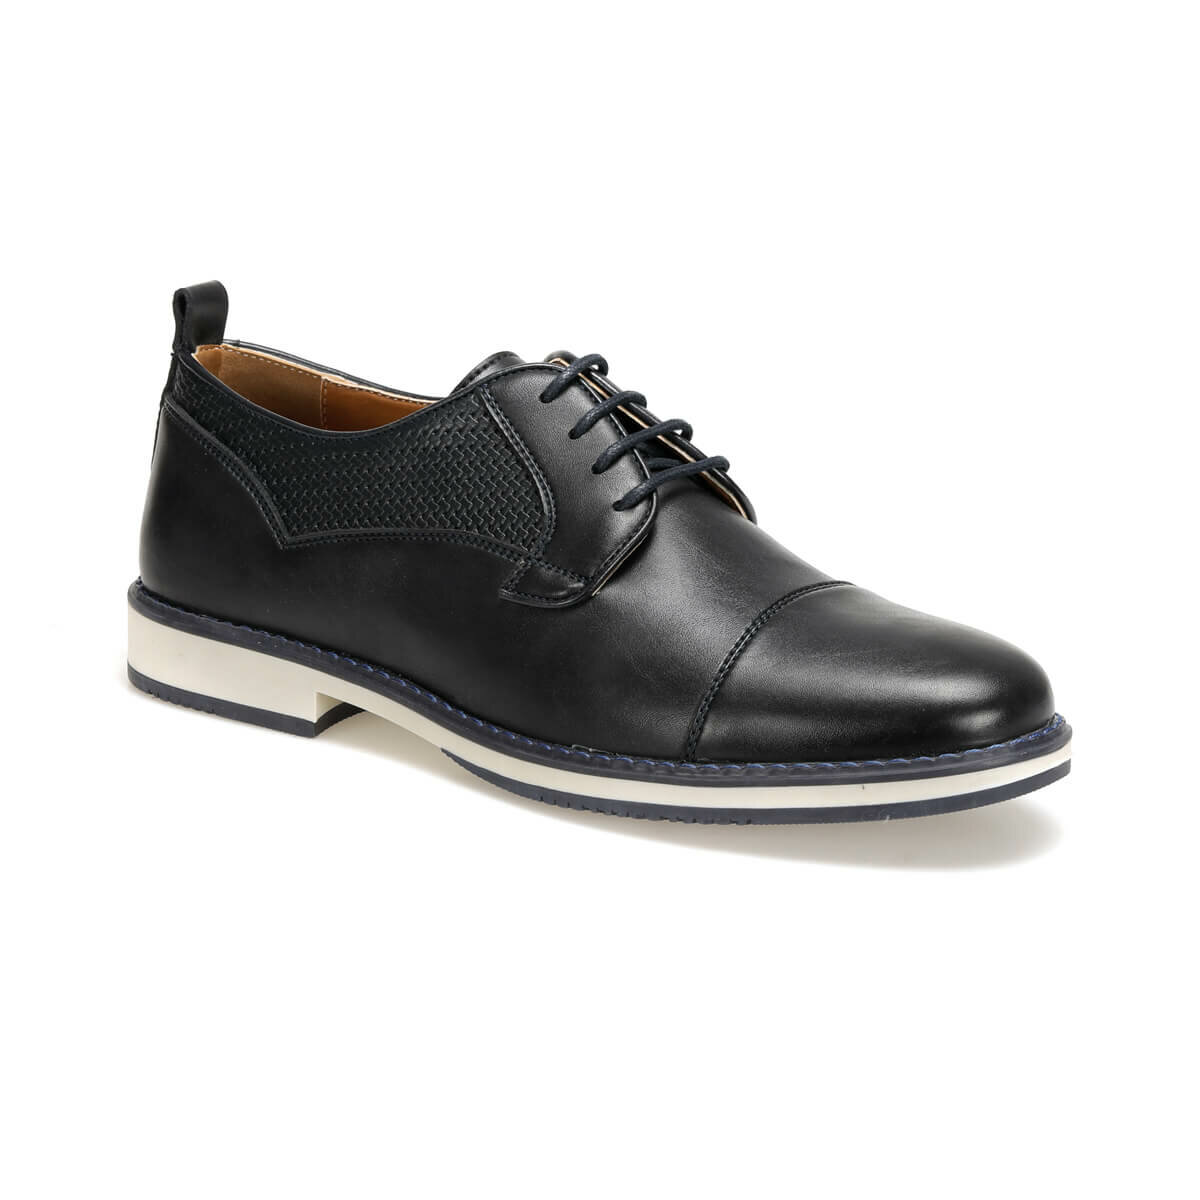 FLO 71419-3 Dark Blue Men 'S Classic Shoes JJ-Stiller